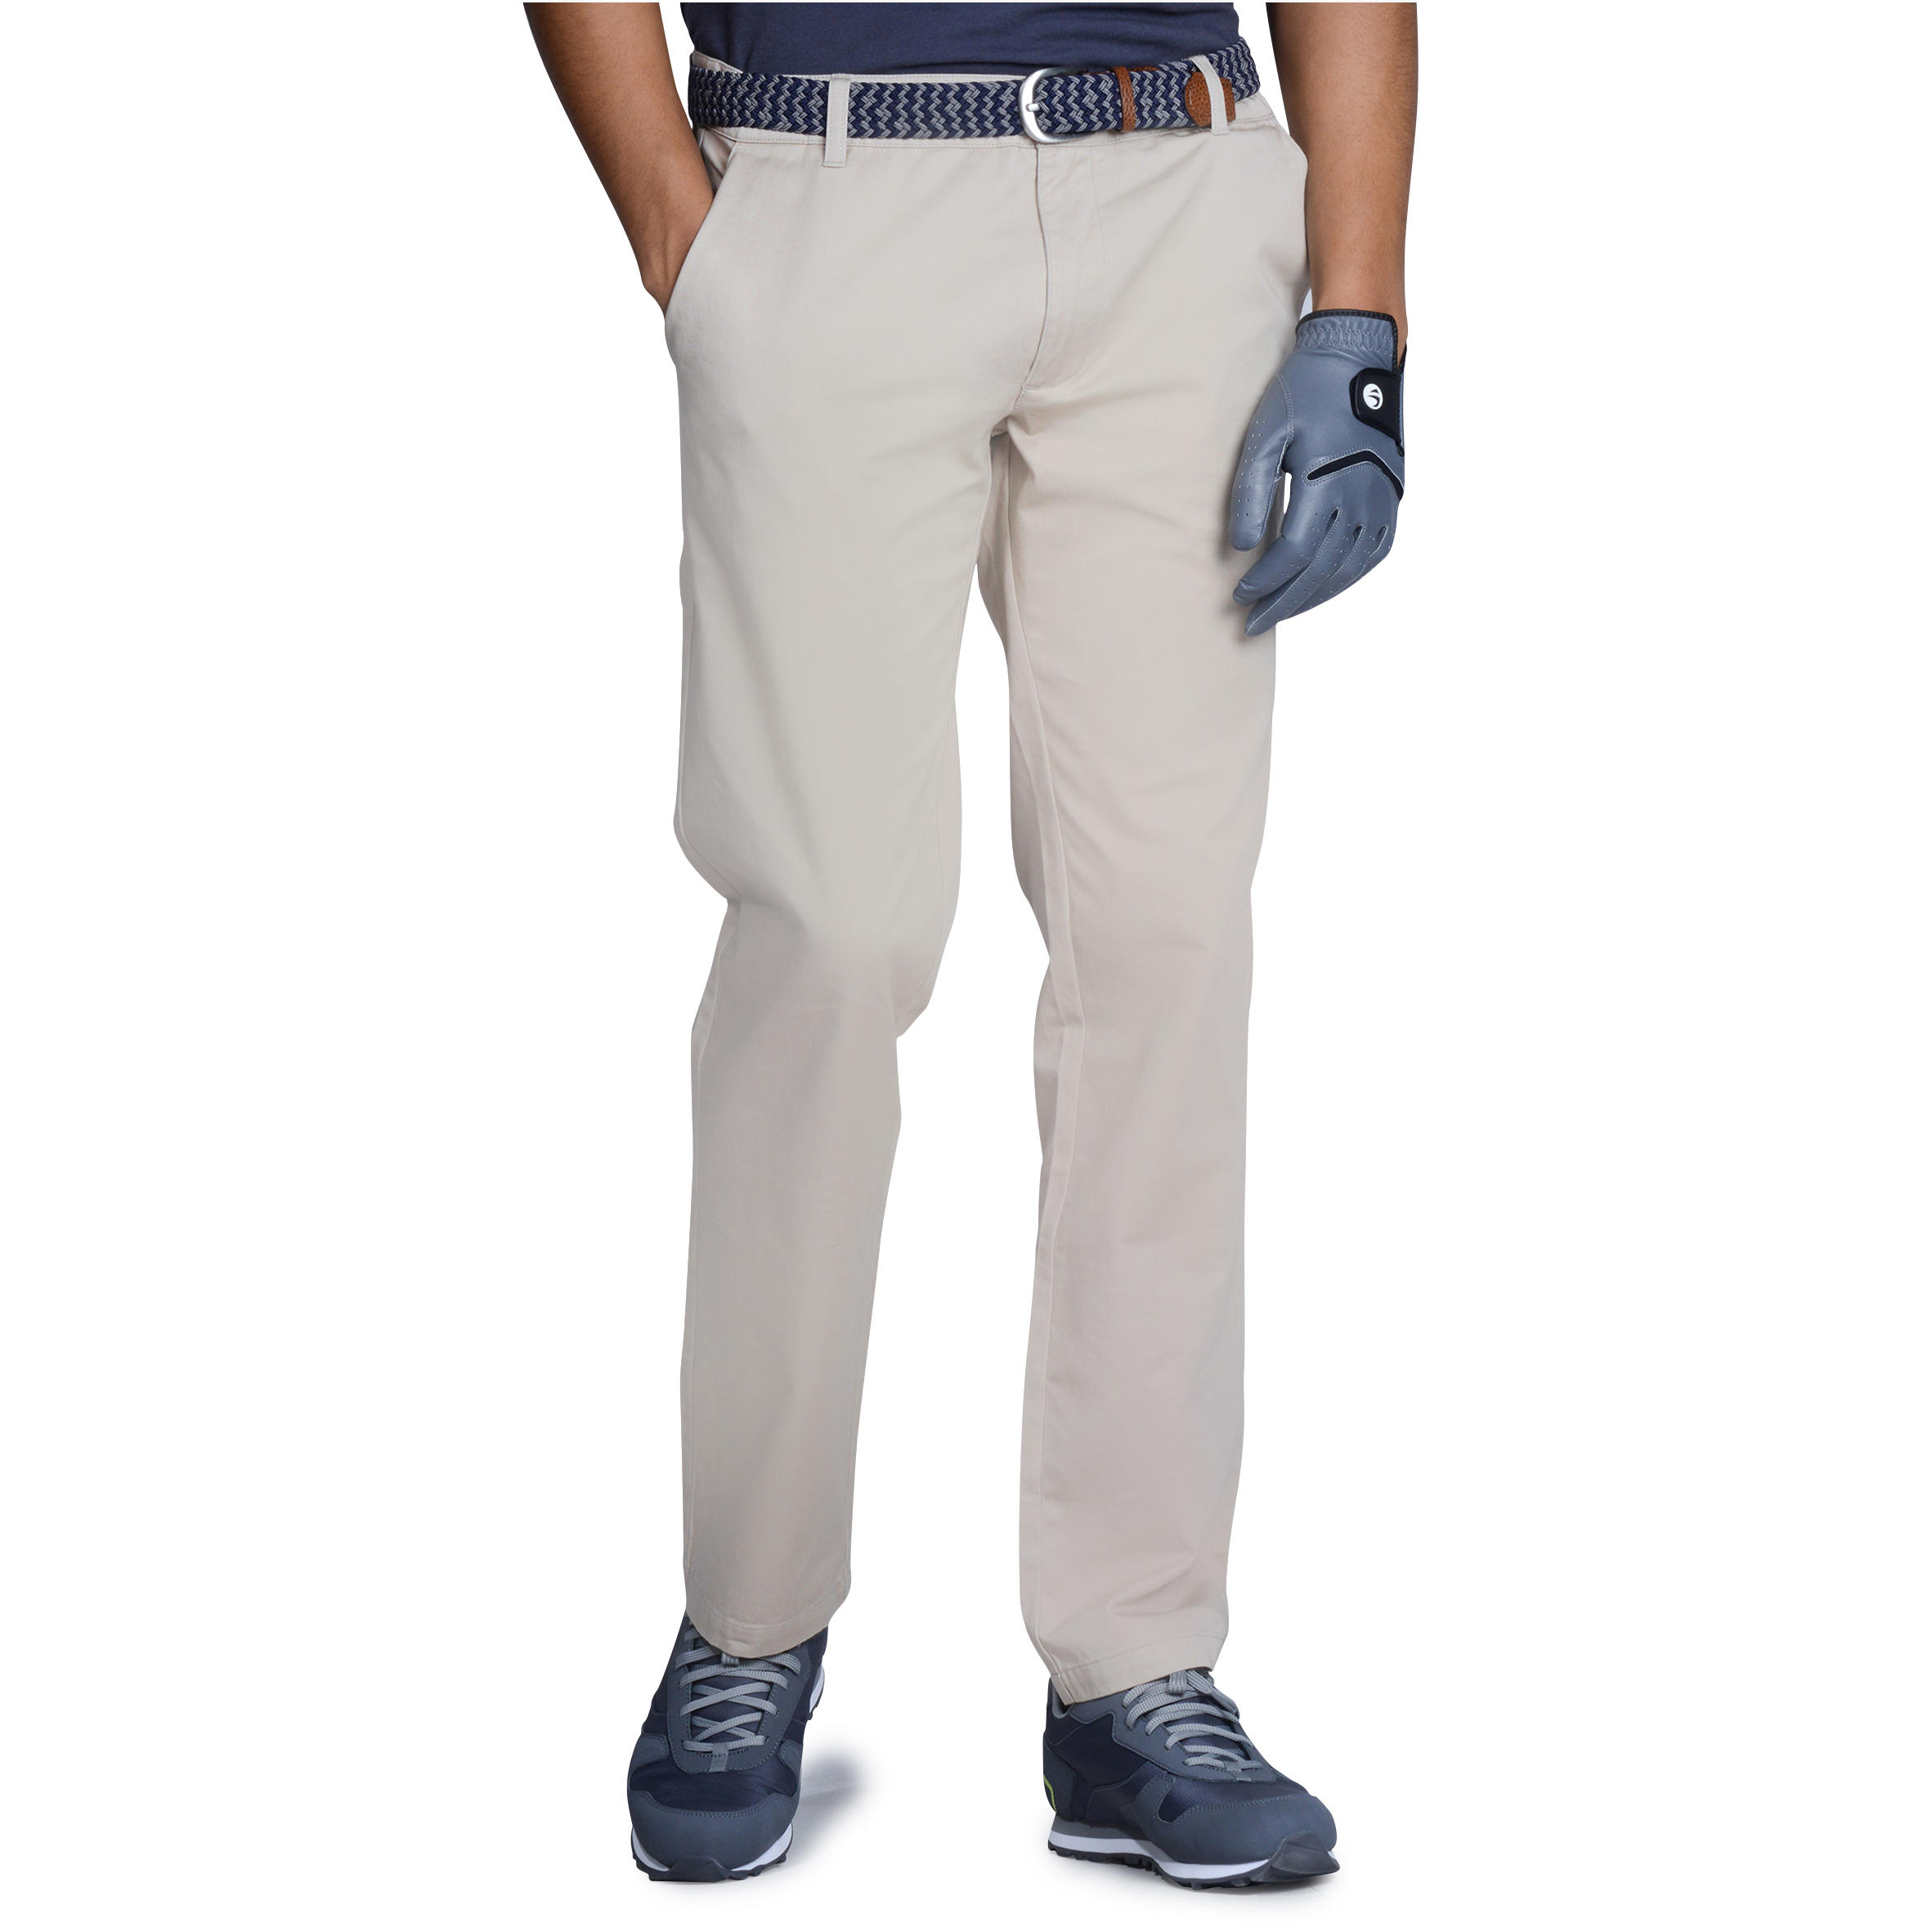 Men's Golf Trousers...